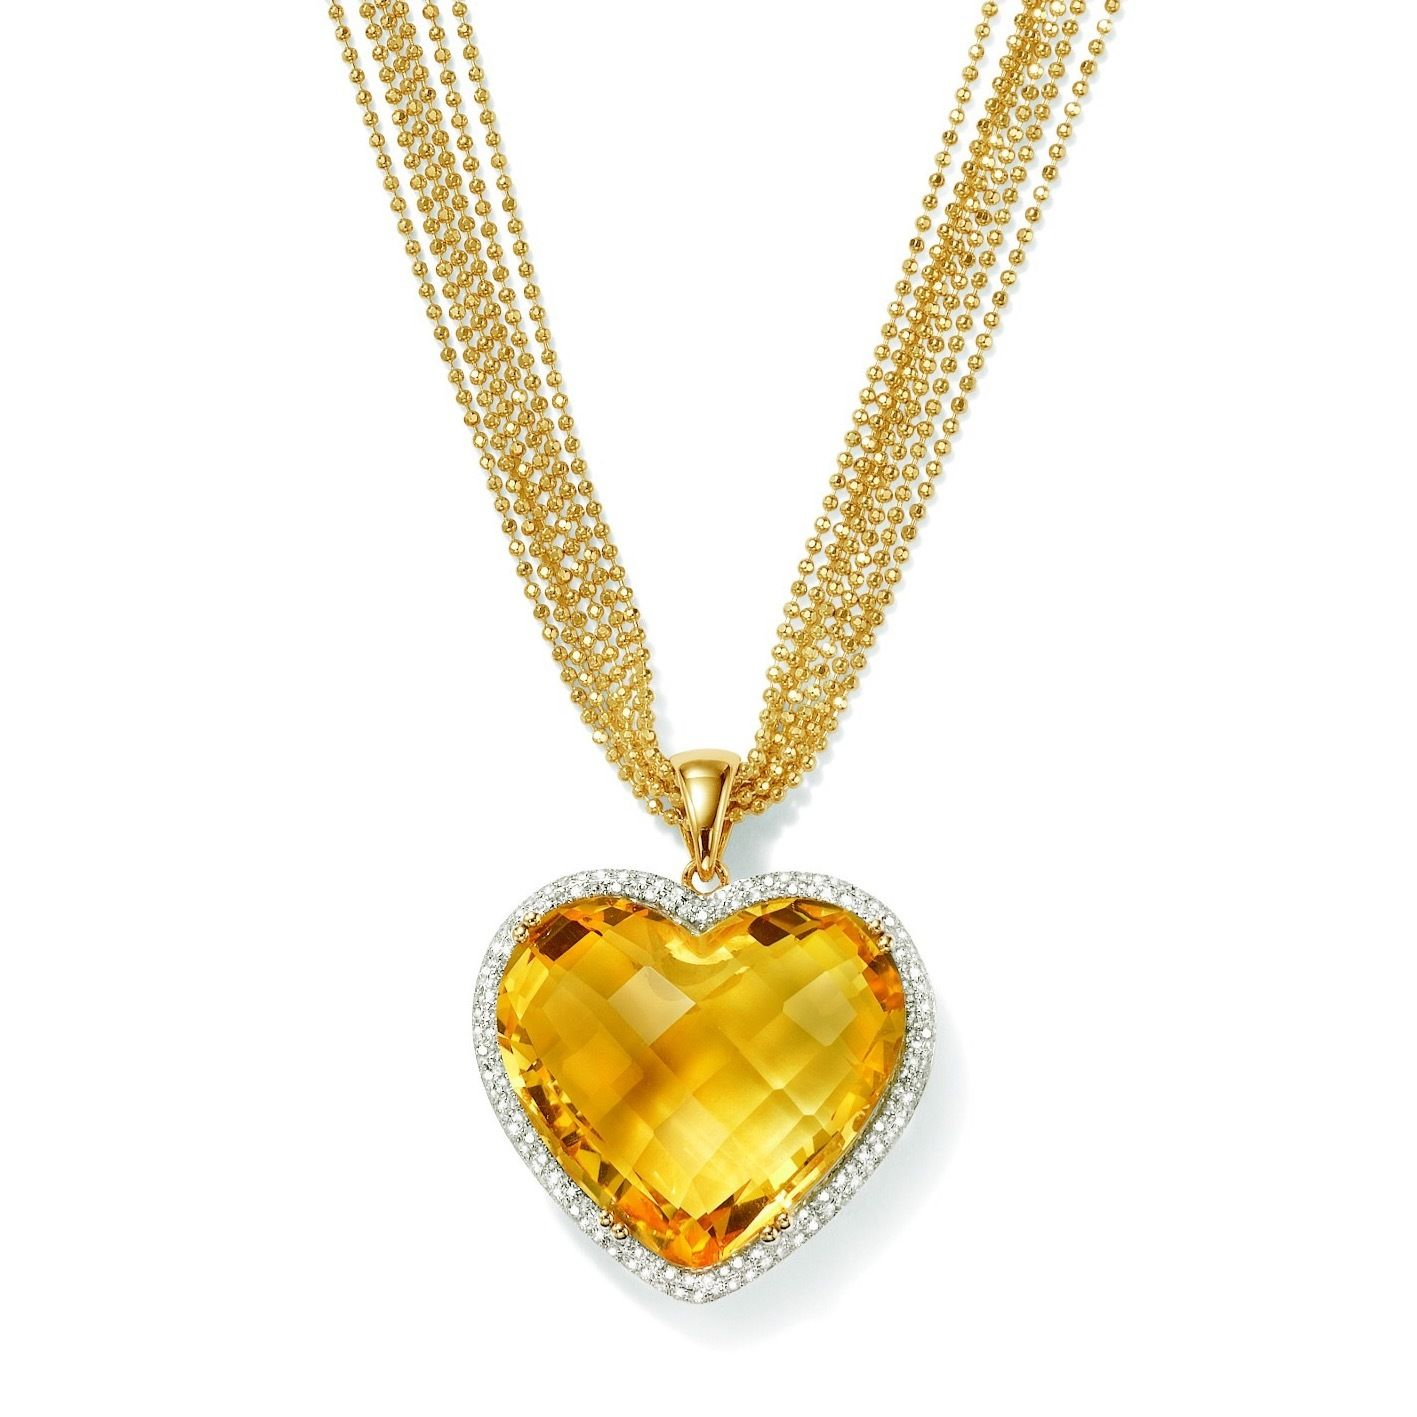 2000 carat citrine and 43 ct tw diamond heart pendant in 14kt our 2000 carat citrine heart pendant trimmed in diamonds will steal the show single bale mozeypictures Image collections